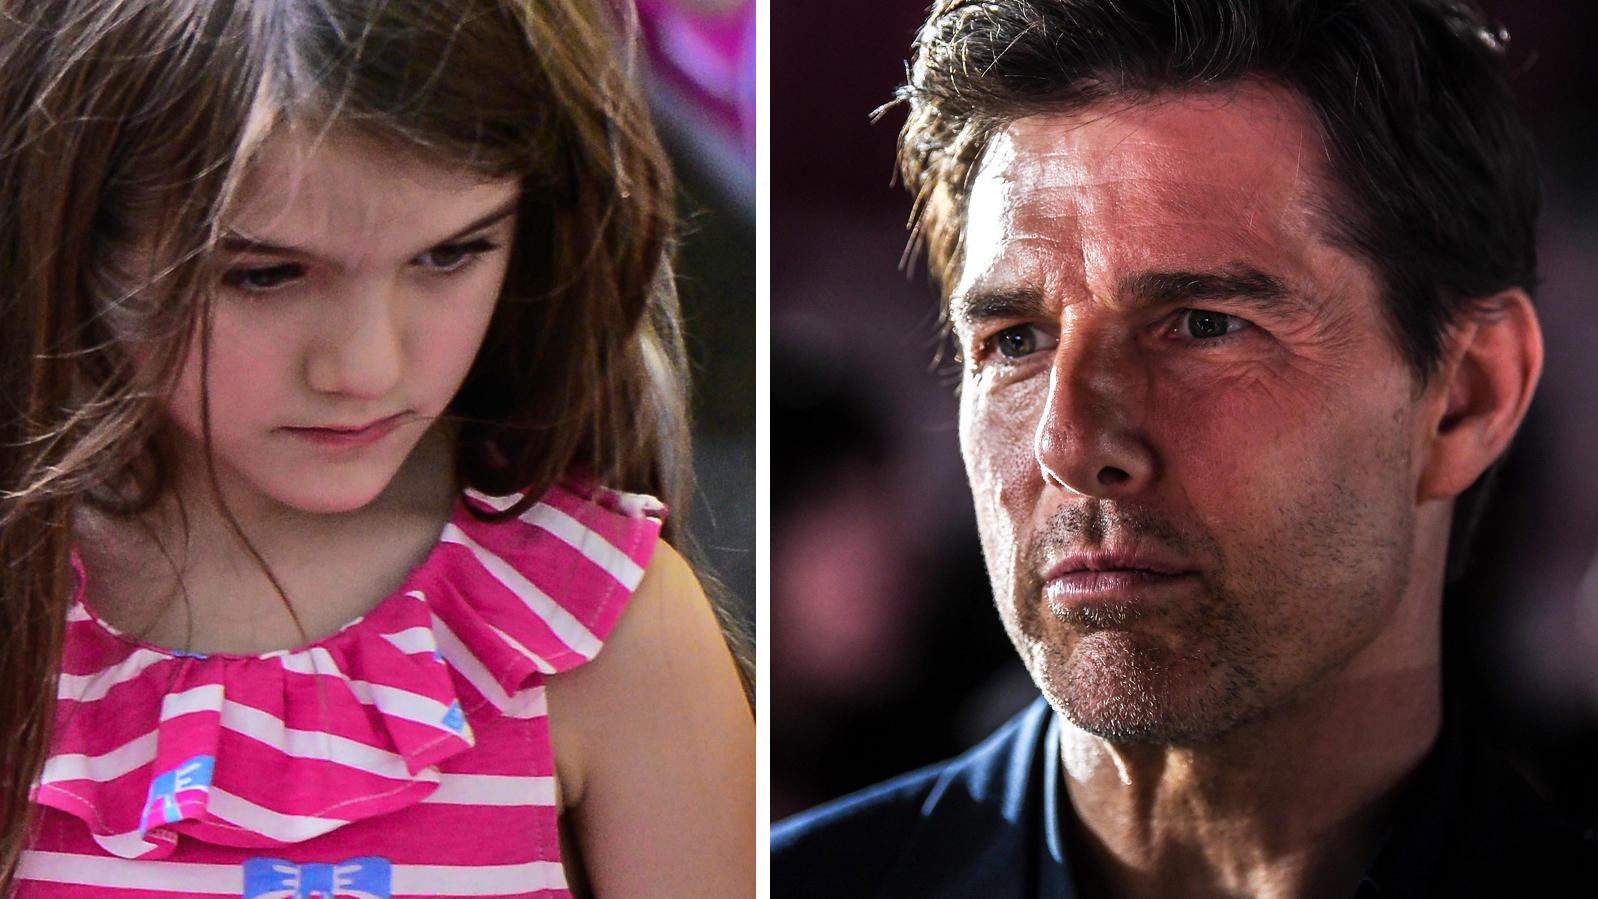 Tom cruise groß  Tom Cruise Movie Box Office Results  2019-05-20